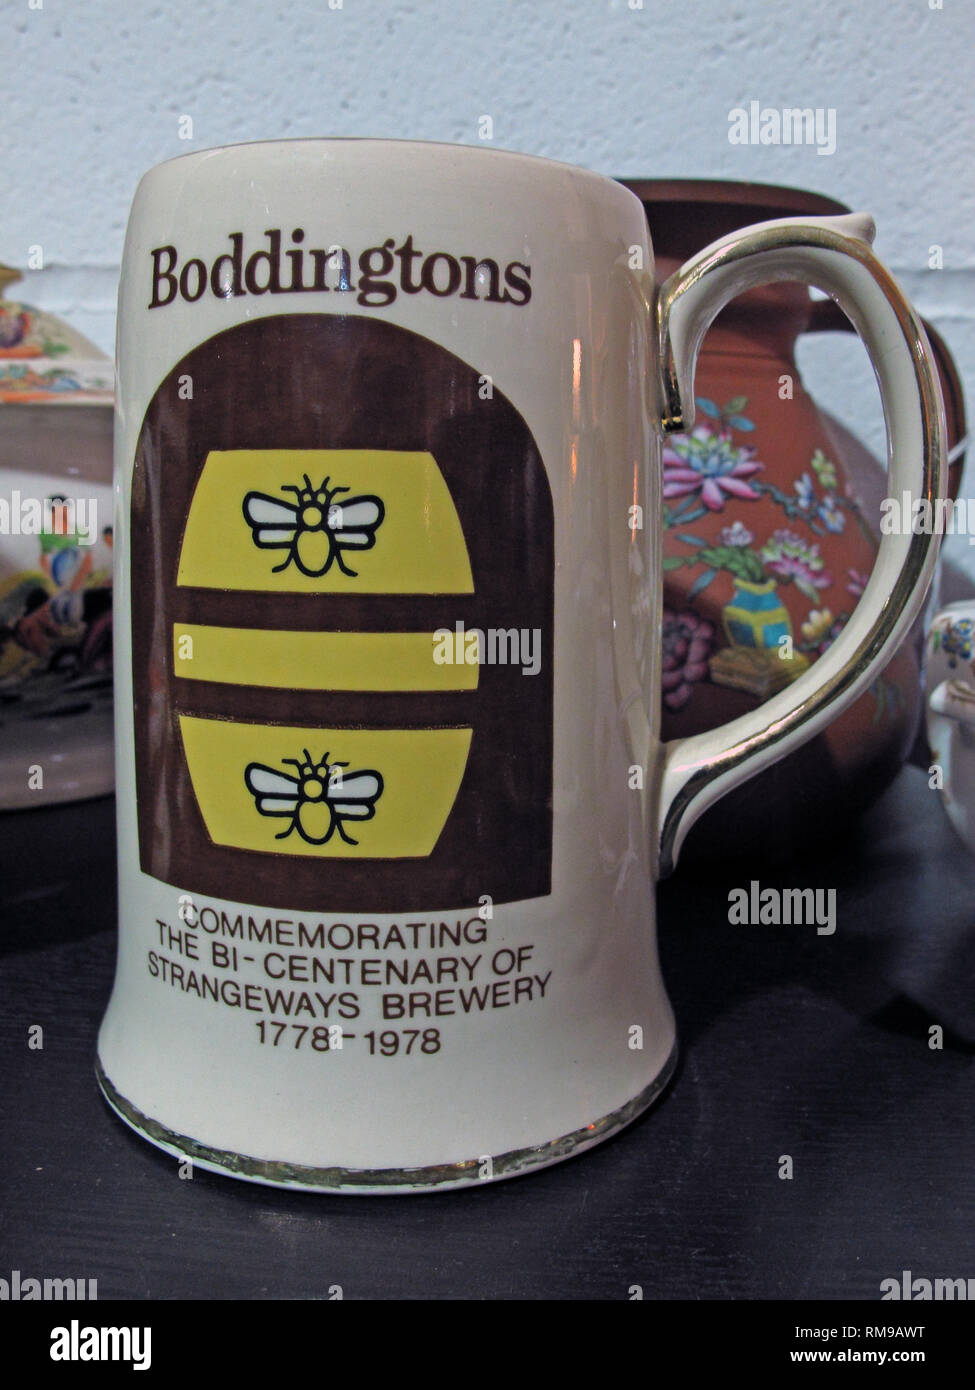 Pot tankard, Commemorating the bi-centenary of Strangeways Brewery 1778-1978 - Stock Image